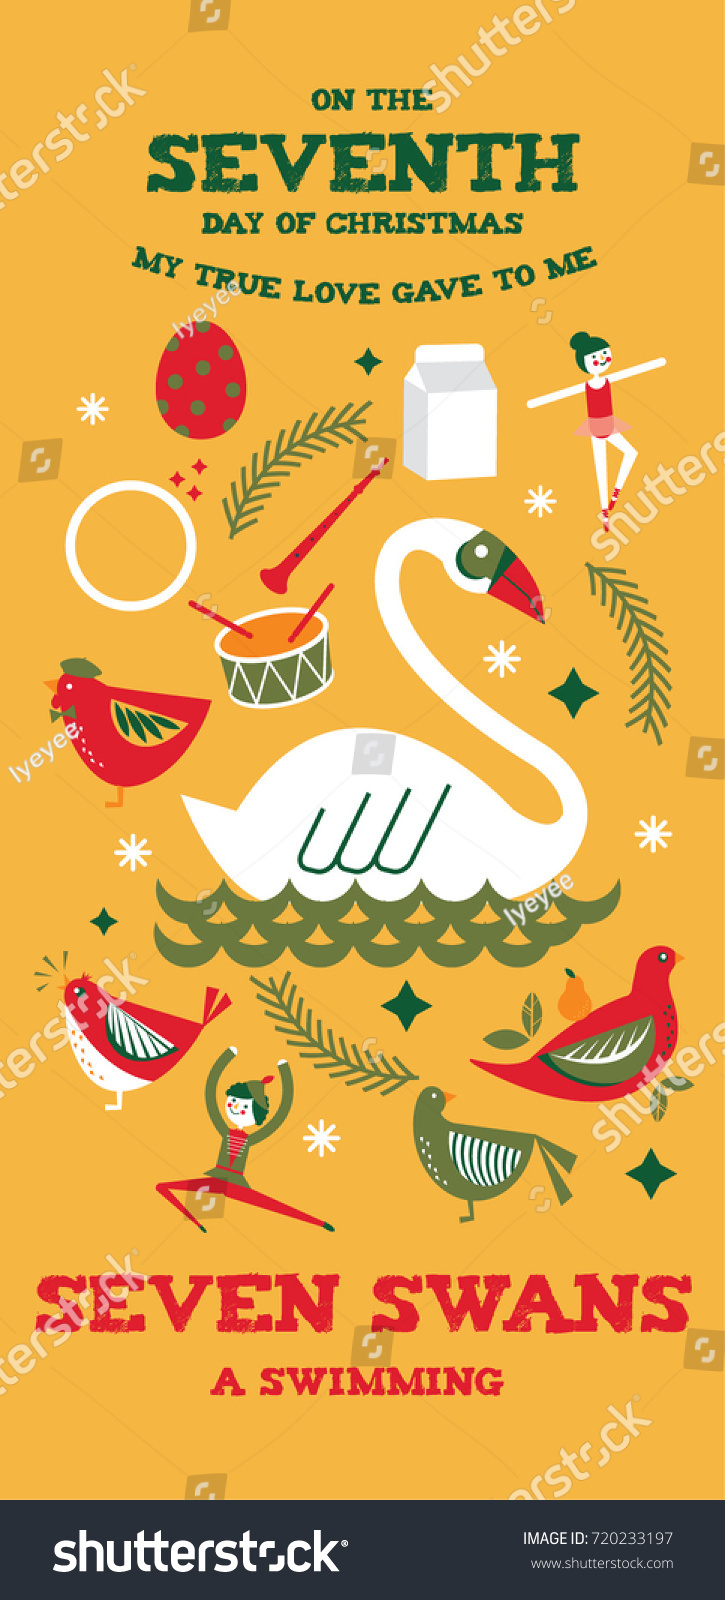 hight resolution of seventh day of christmas from the twelve days of christmas greetings template vector illustration